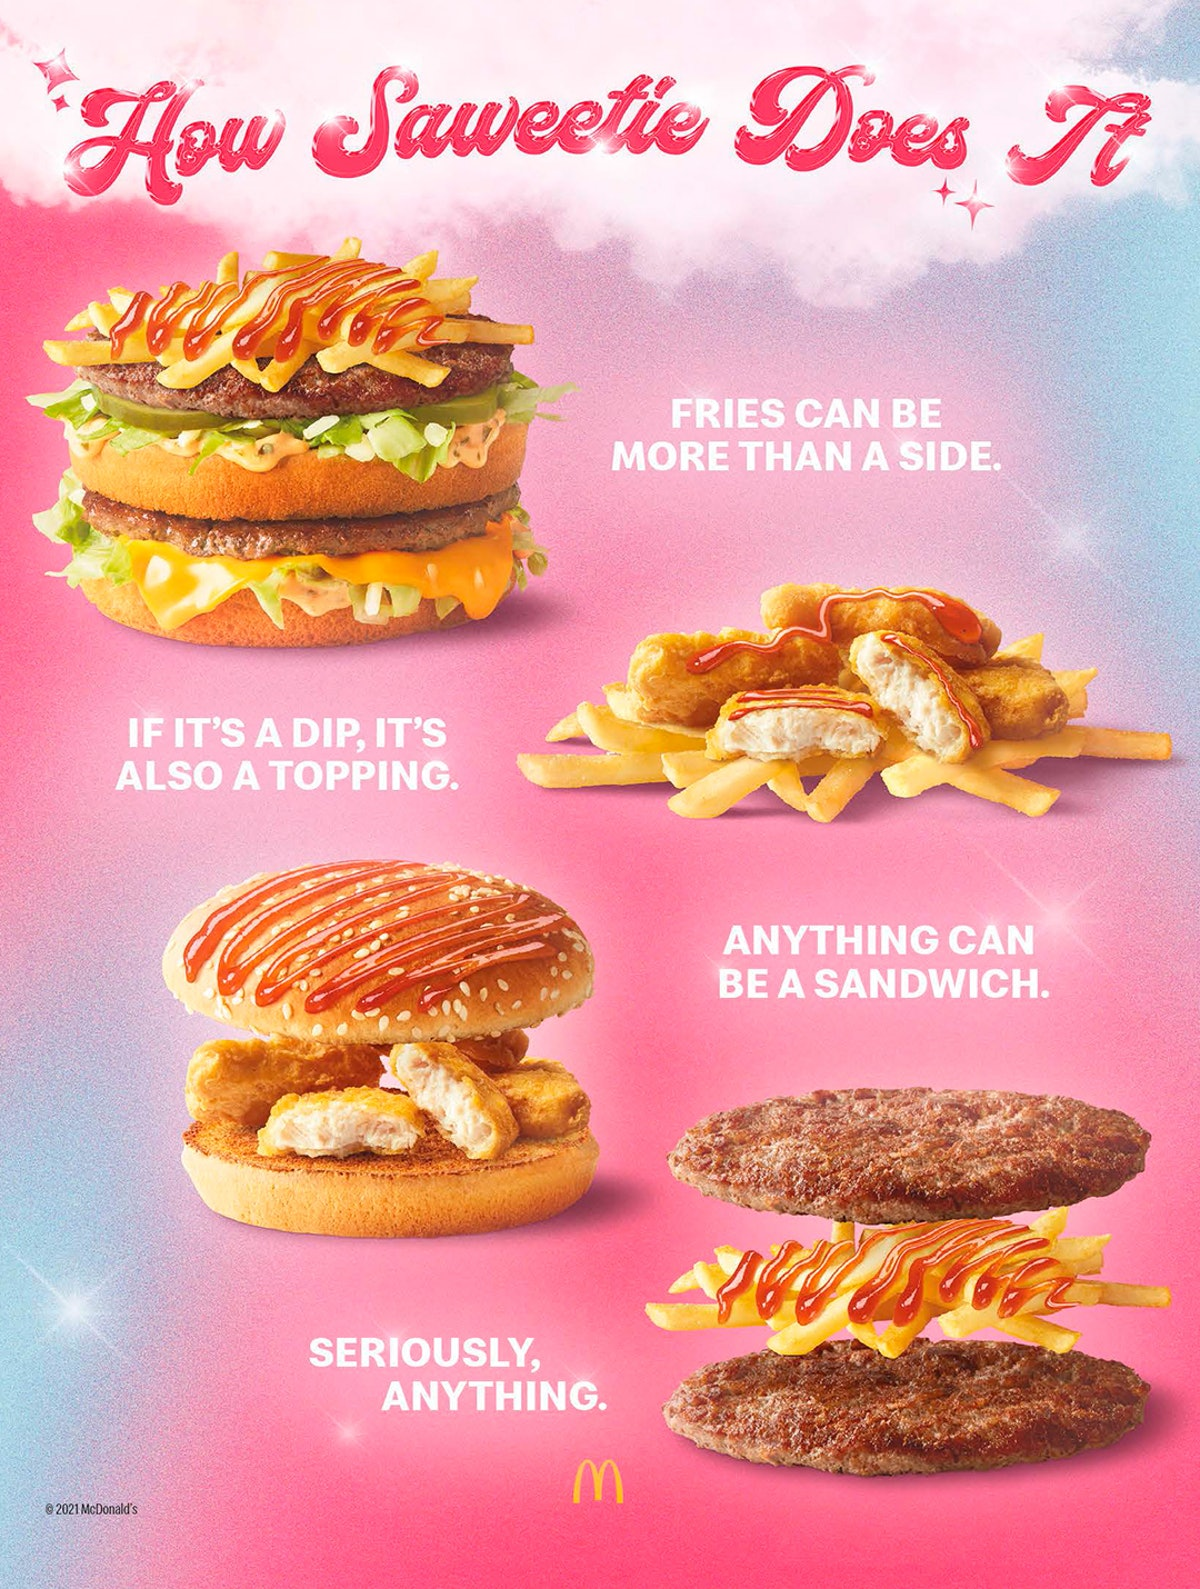 Here's what's in McDonald's Saweetie Meal so you know before you order.